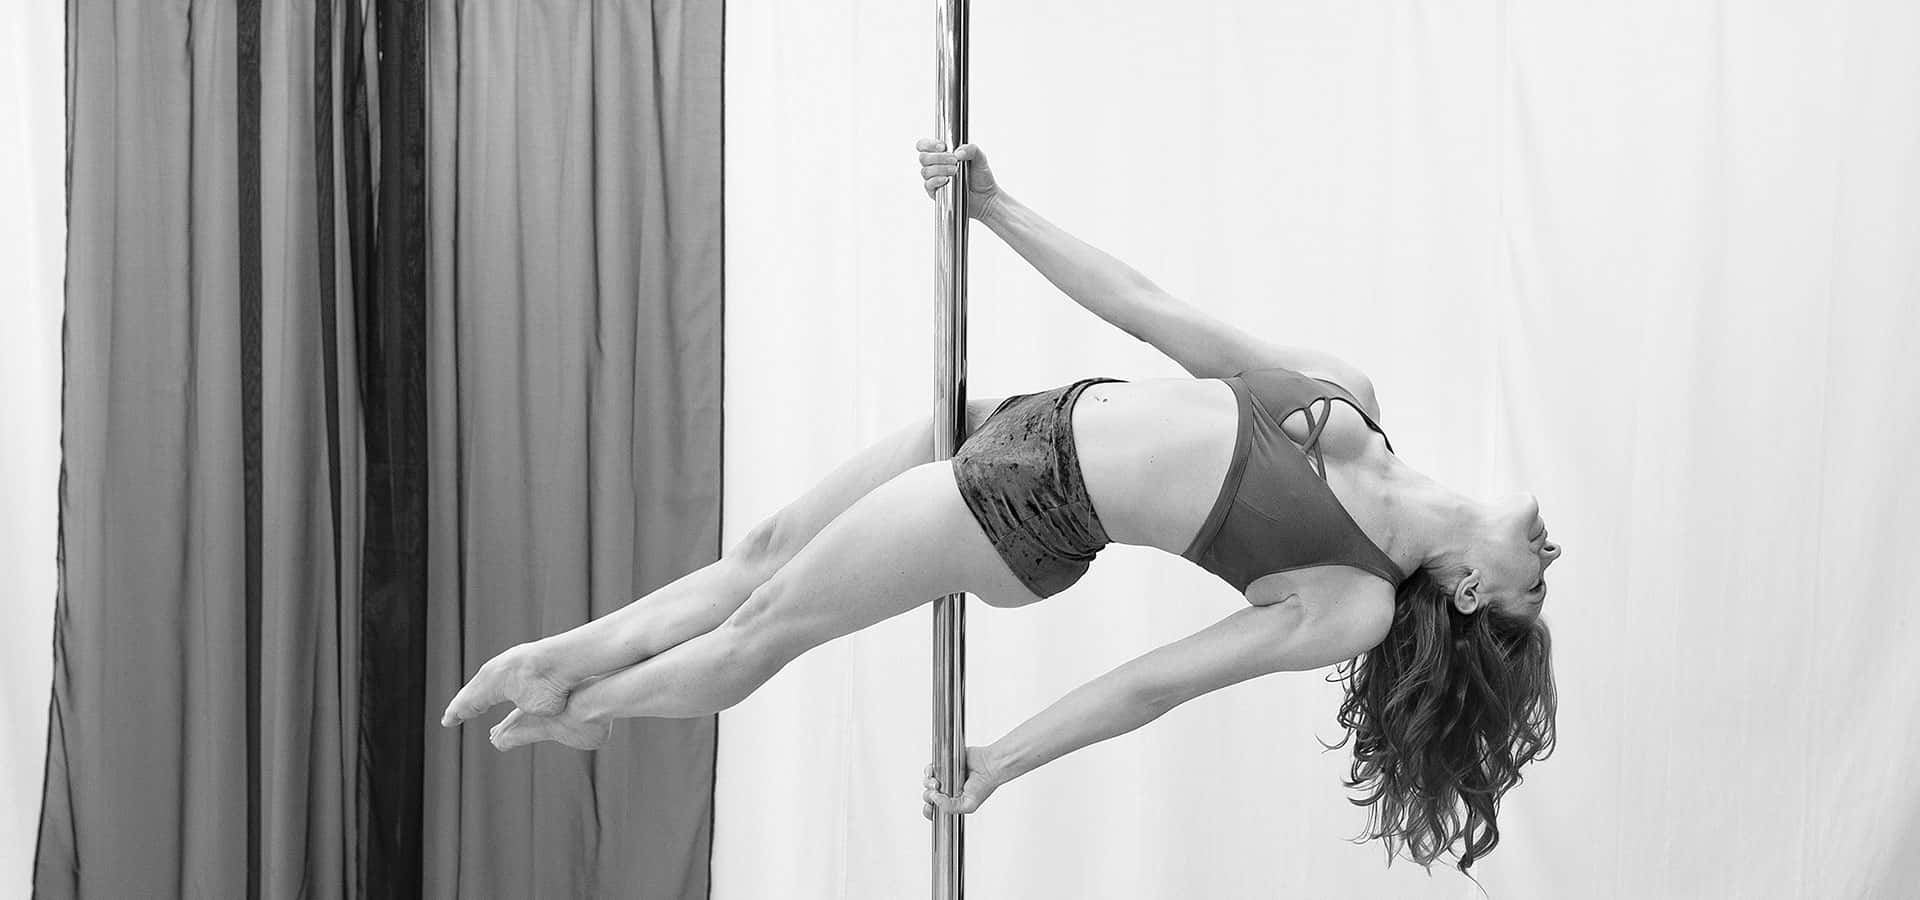 Pole Dance Studio Gravity Arts Zürich